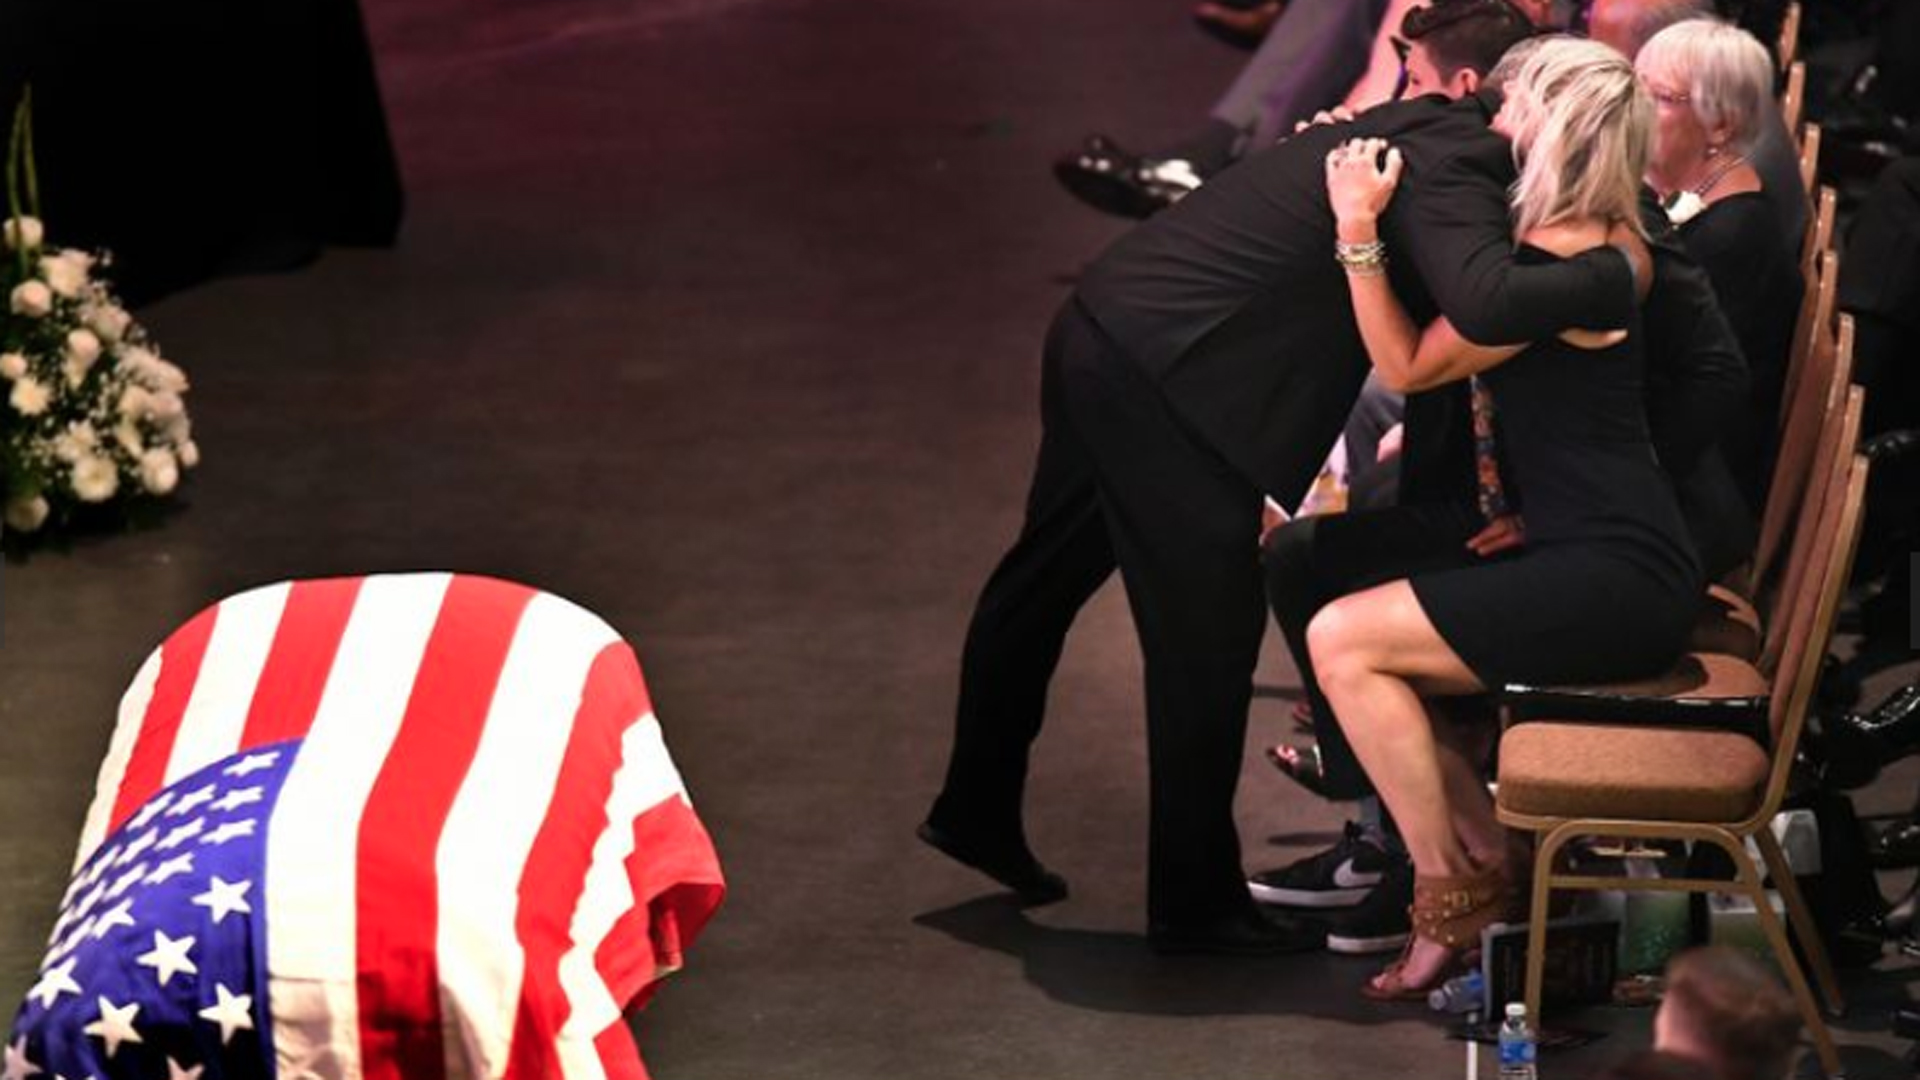 The wife of fallen firefighter Capt. Dave Rosa receives a hug during a memorial service at the Long Beach Convention Center on July 3, 2018. (Credit: Wally Skalij / Los Angeles Times)